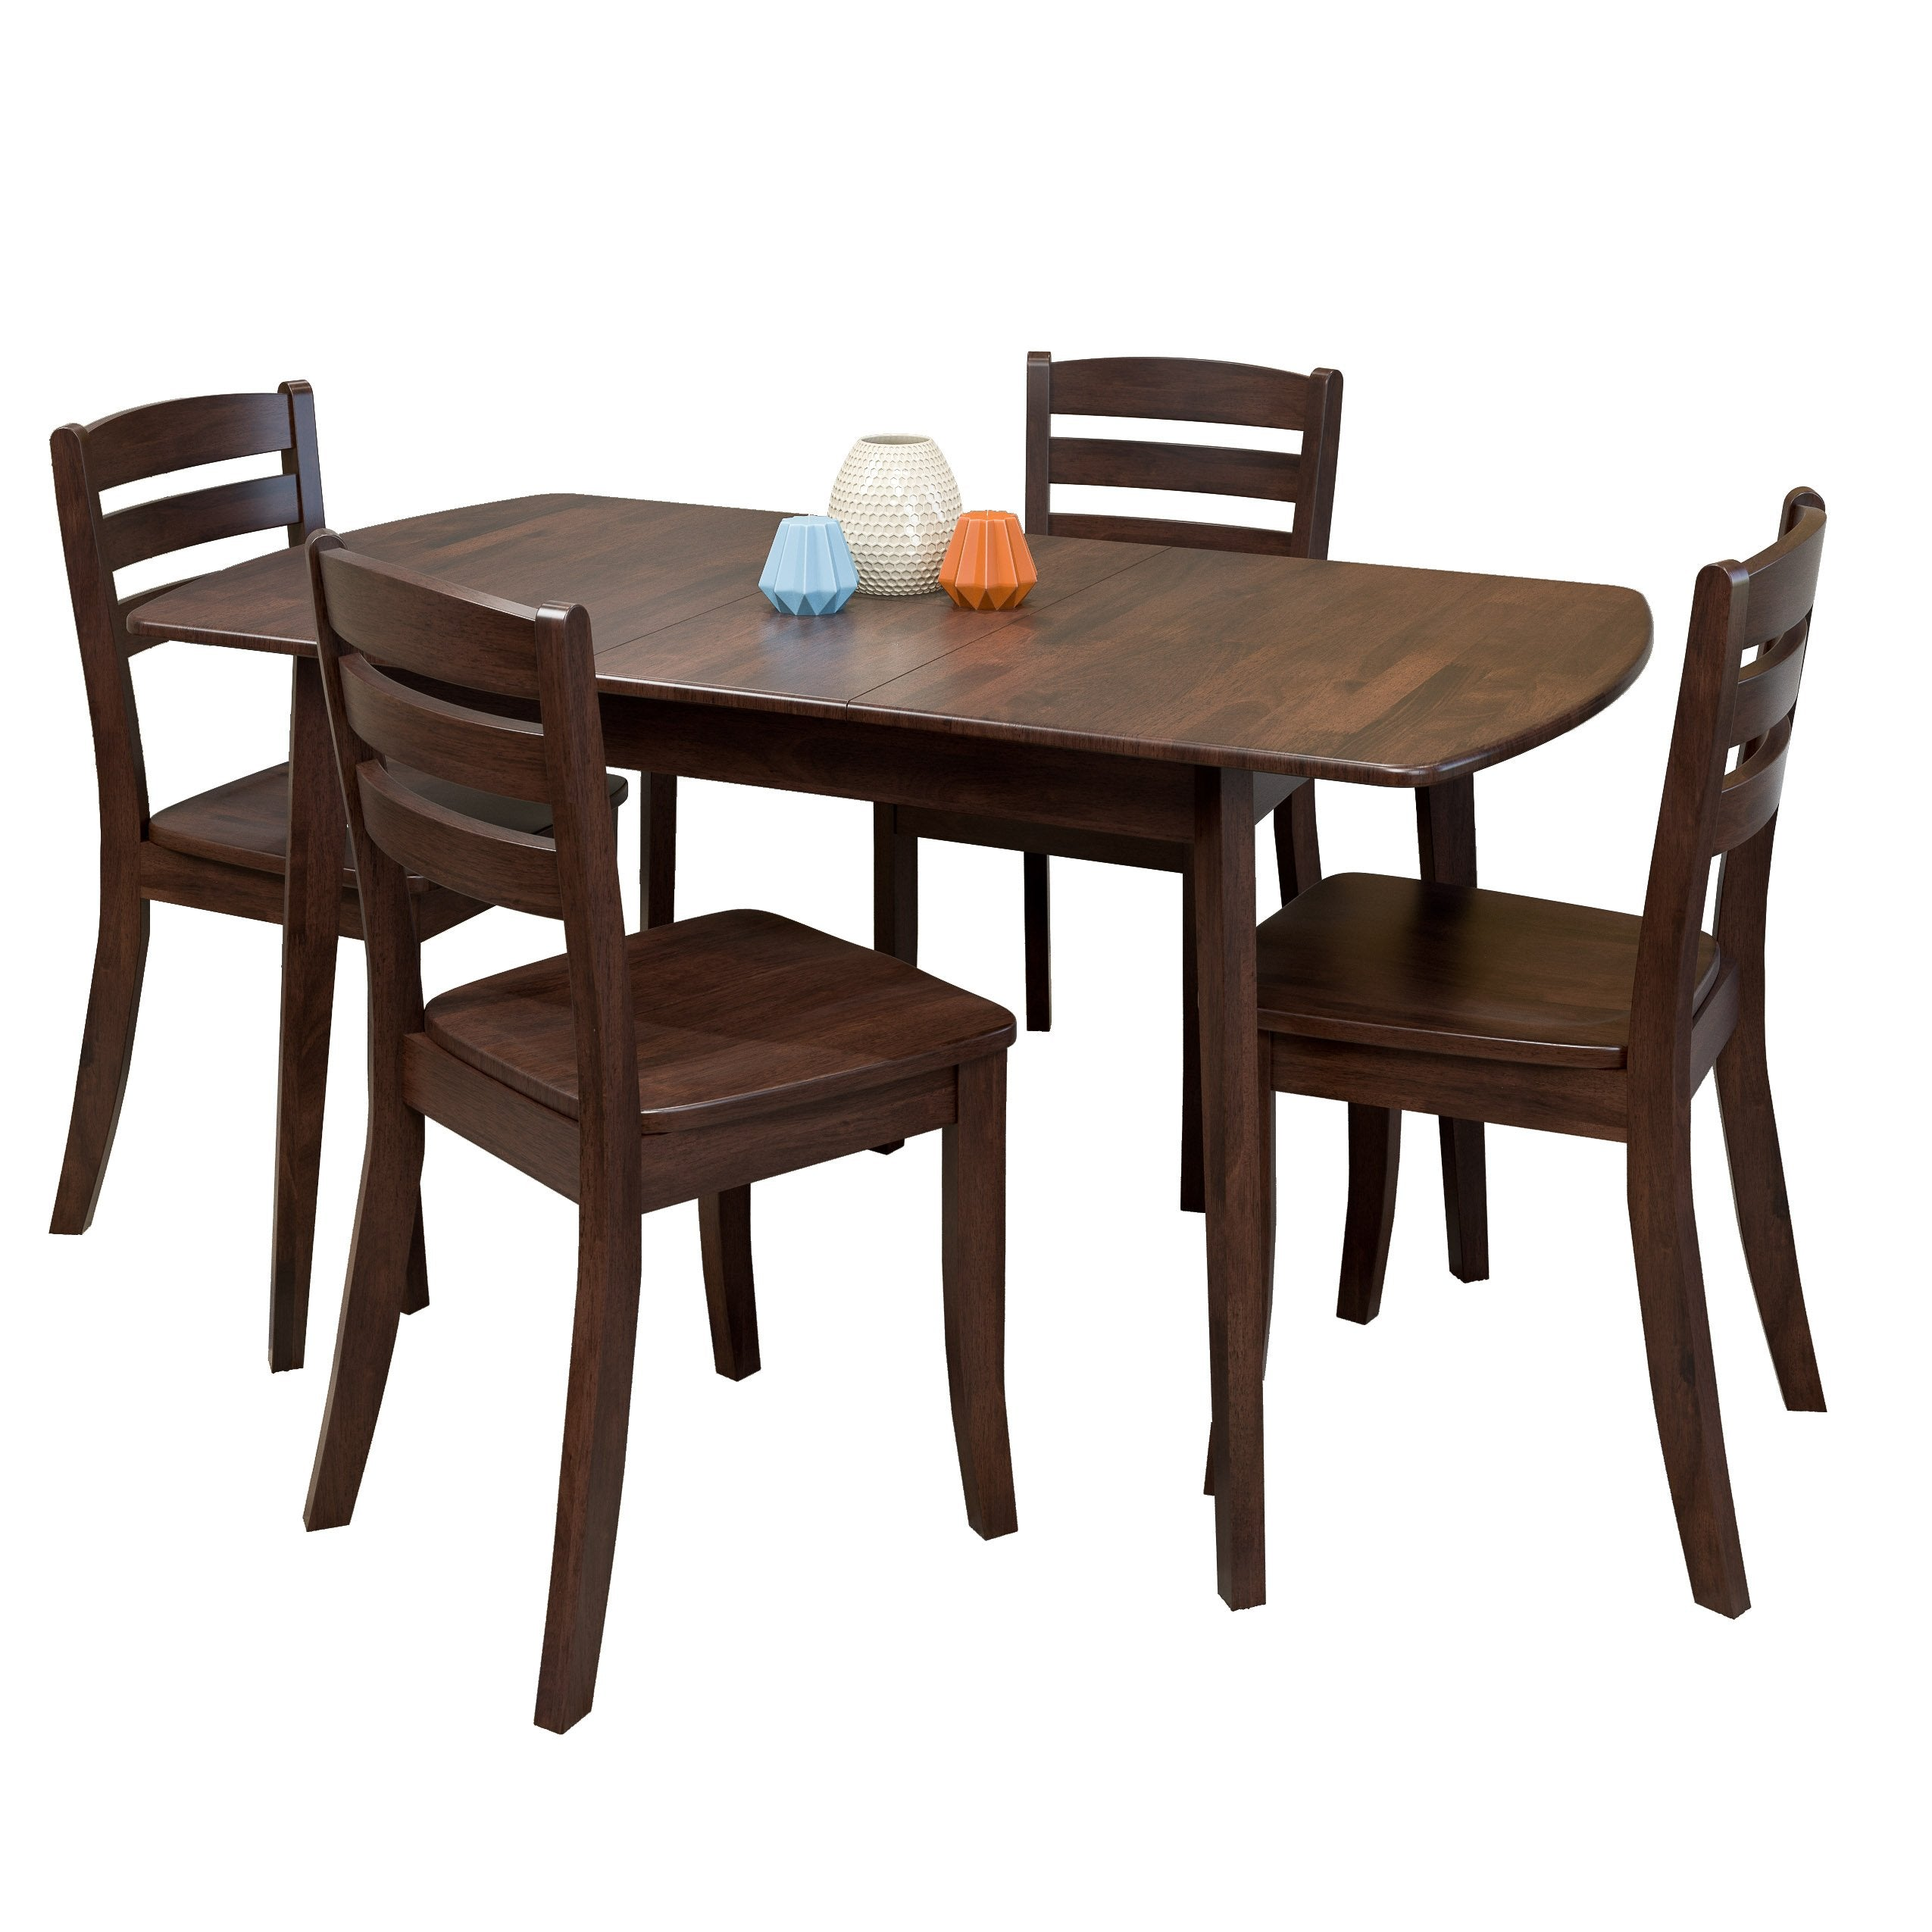 Clearance Dining Sets: 5 Piece Extendable Solid Wood Dining Set